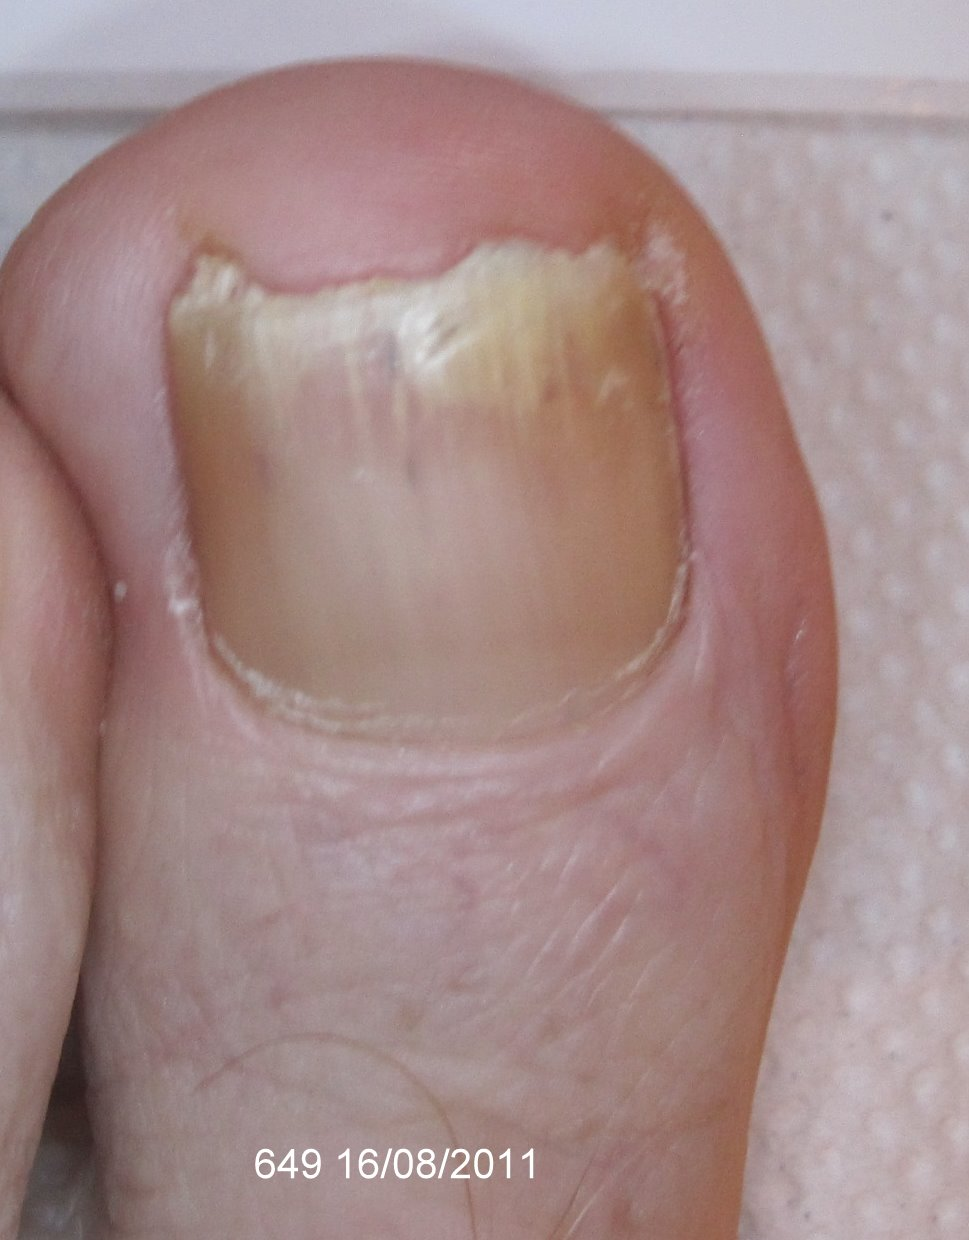 After Laser Nail Treatment